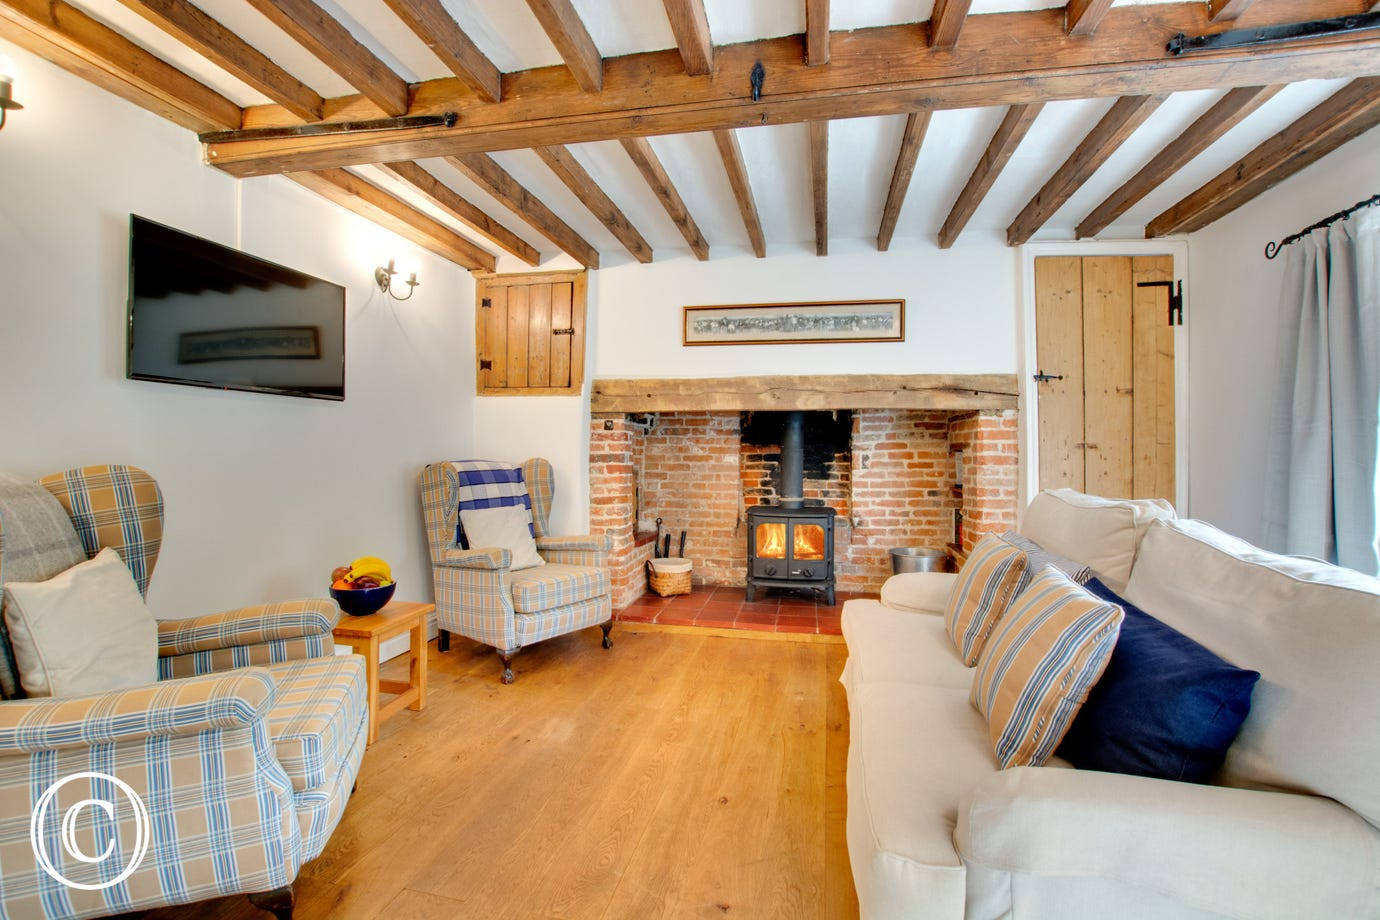 Sitting Room with woodburner, TV & comfortable seating